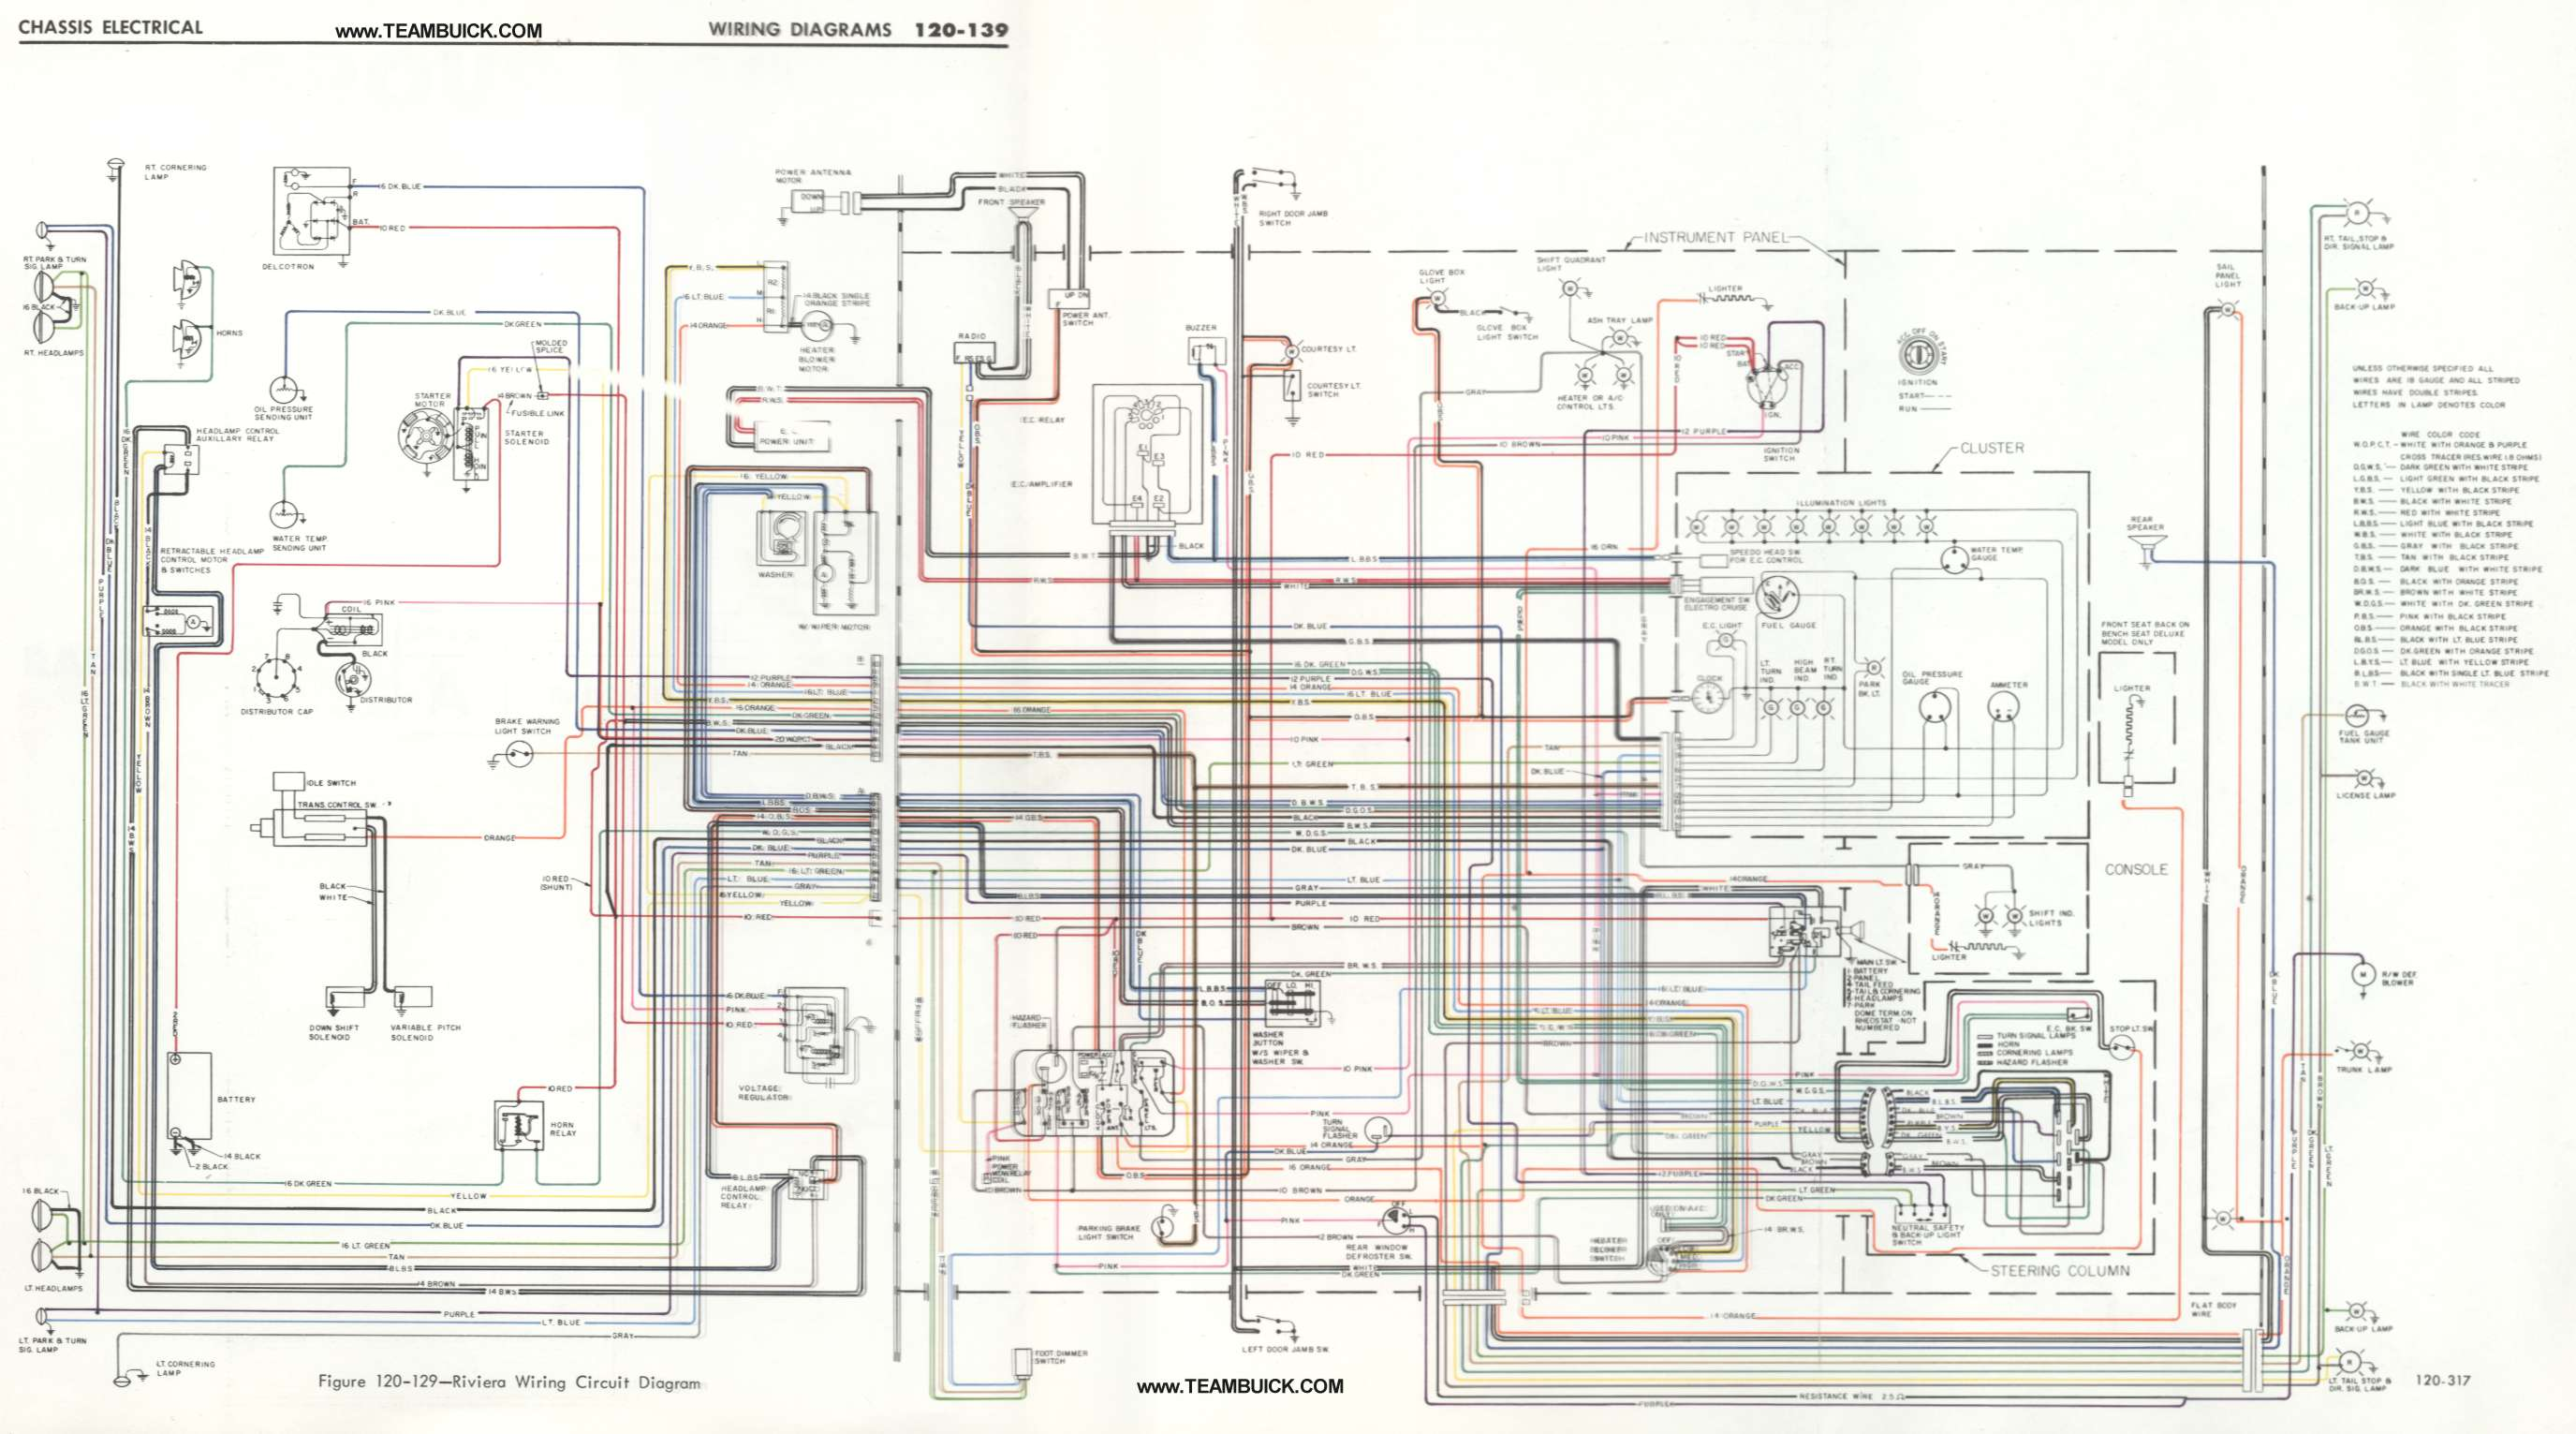 1972 Buick Riviera Wiring Diagram Free Download 1984 1967